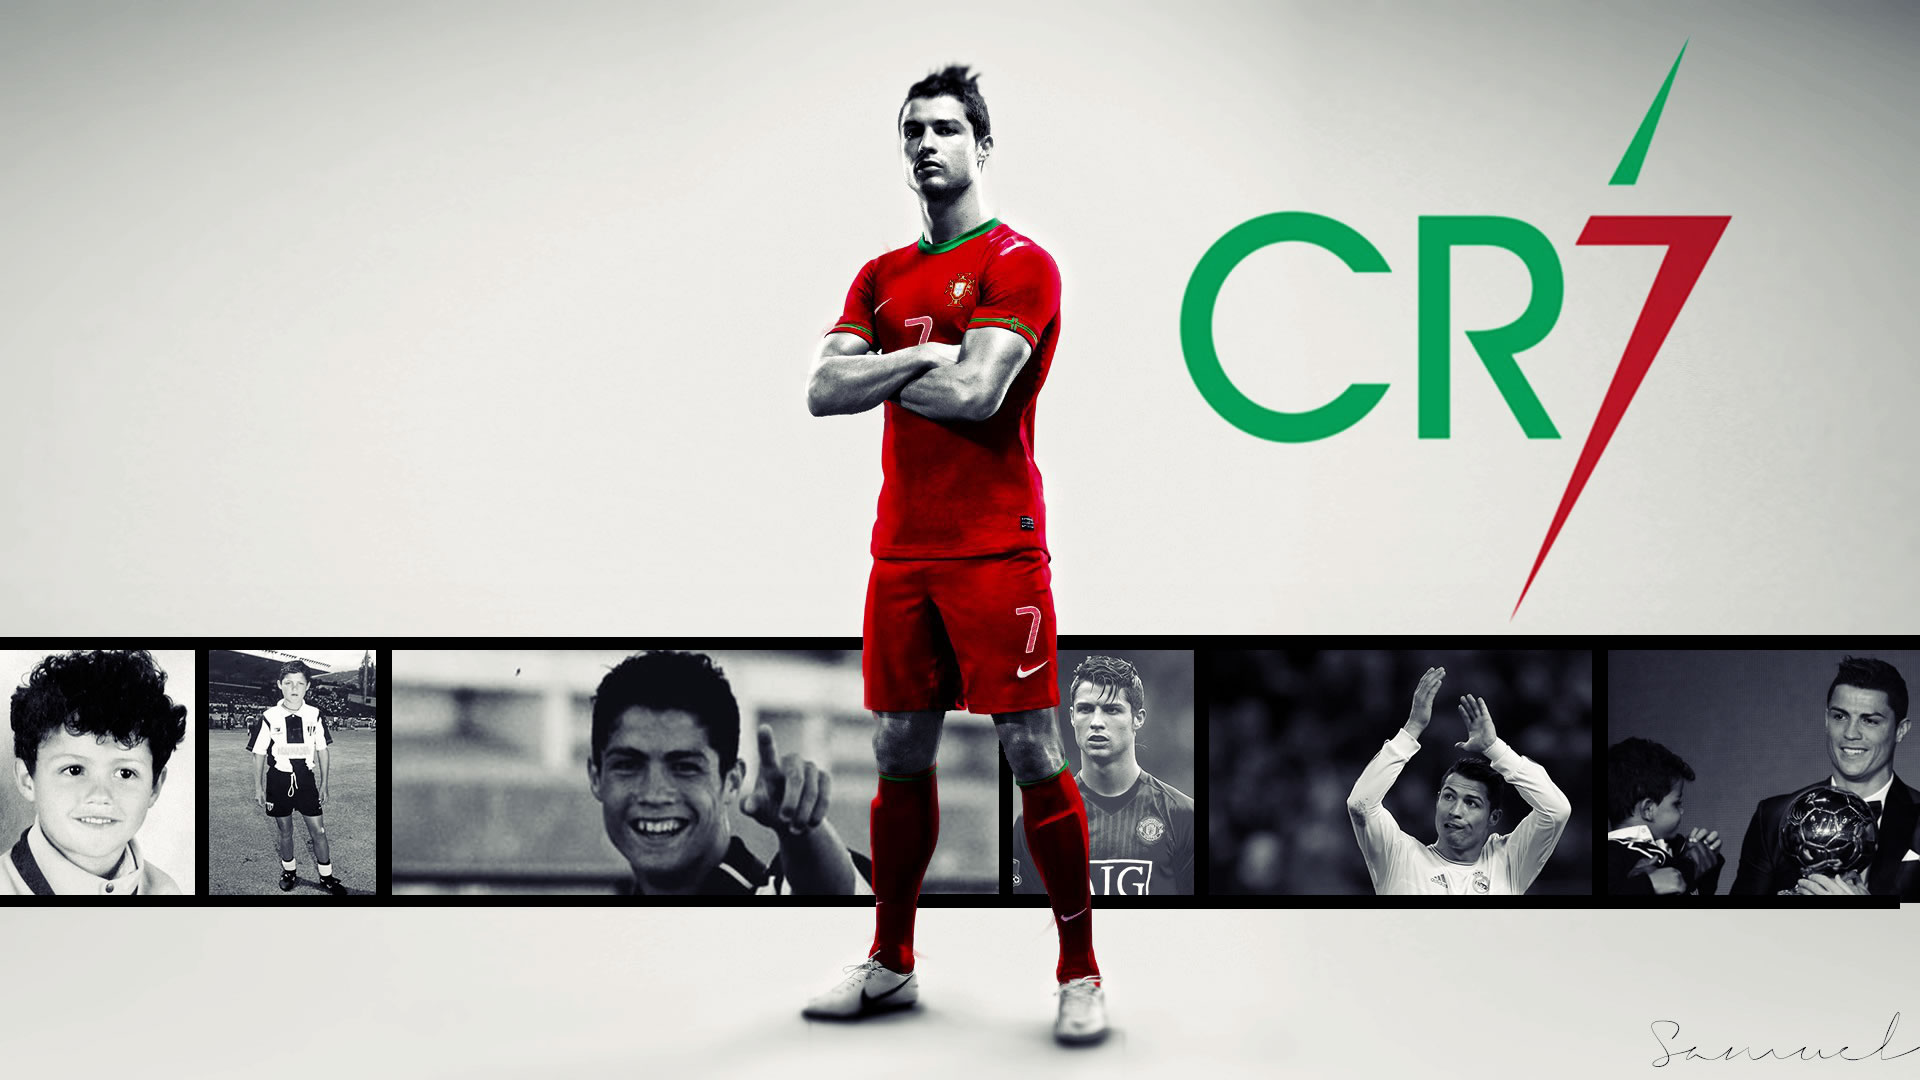 Cristiano Ronaldo Wallpaper by Samy7